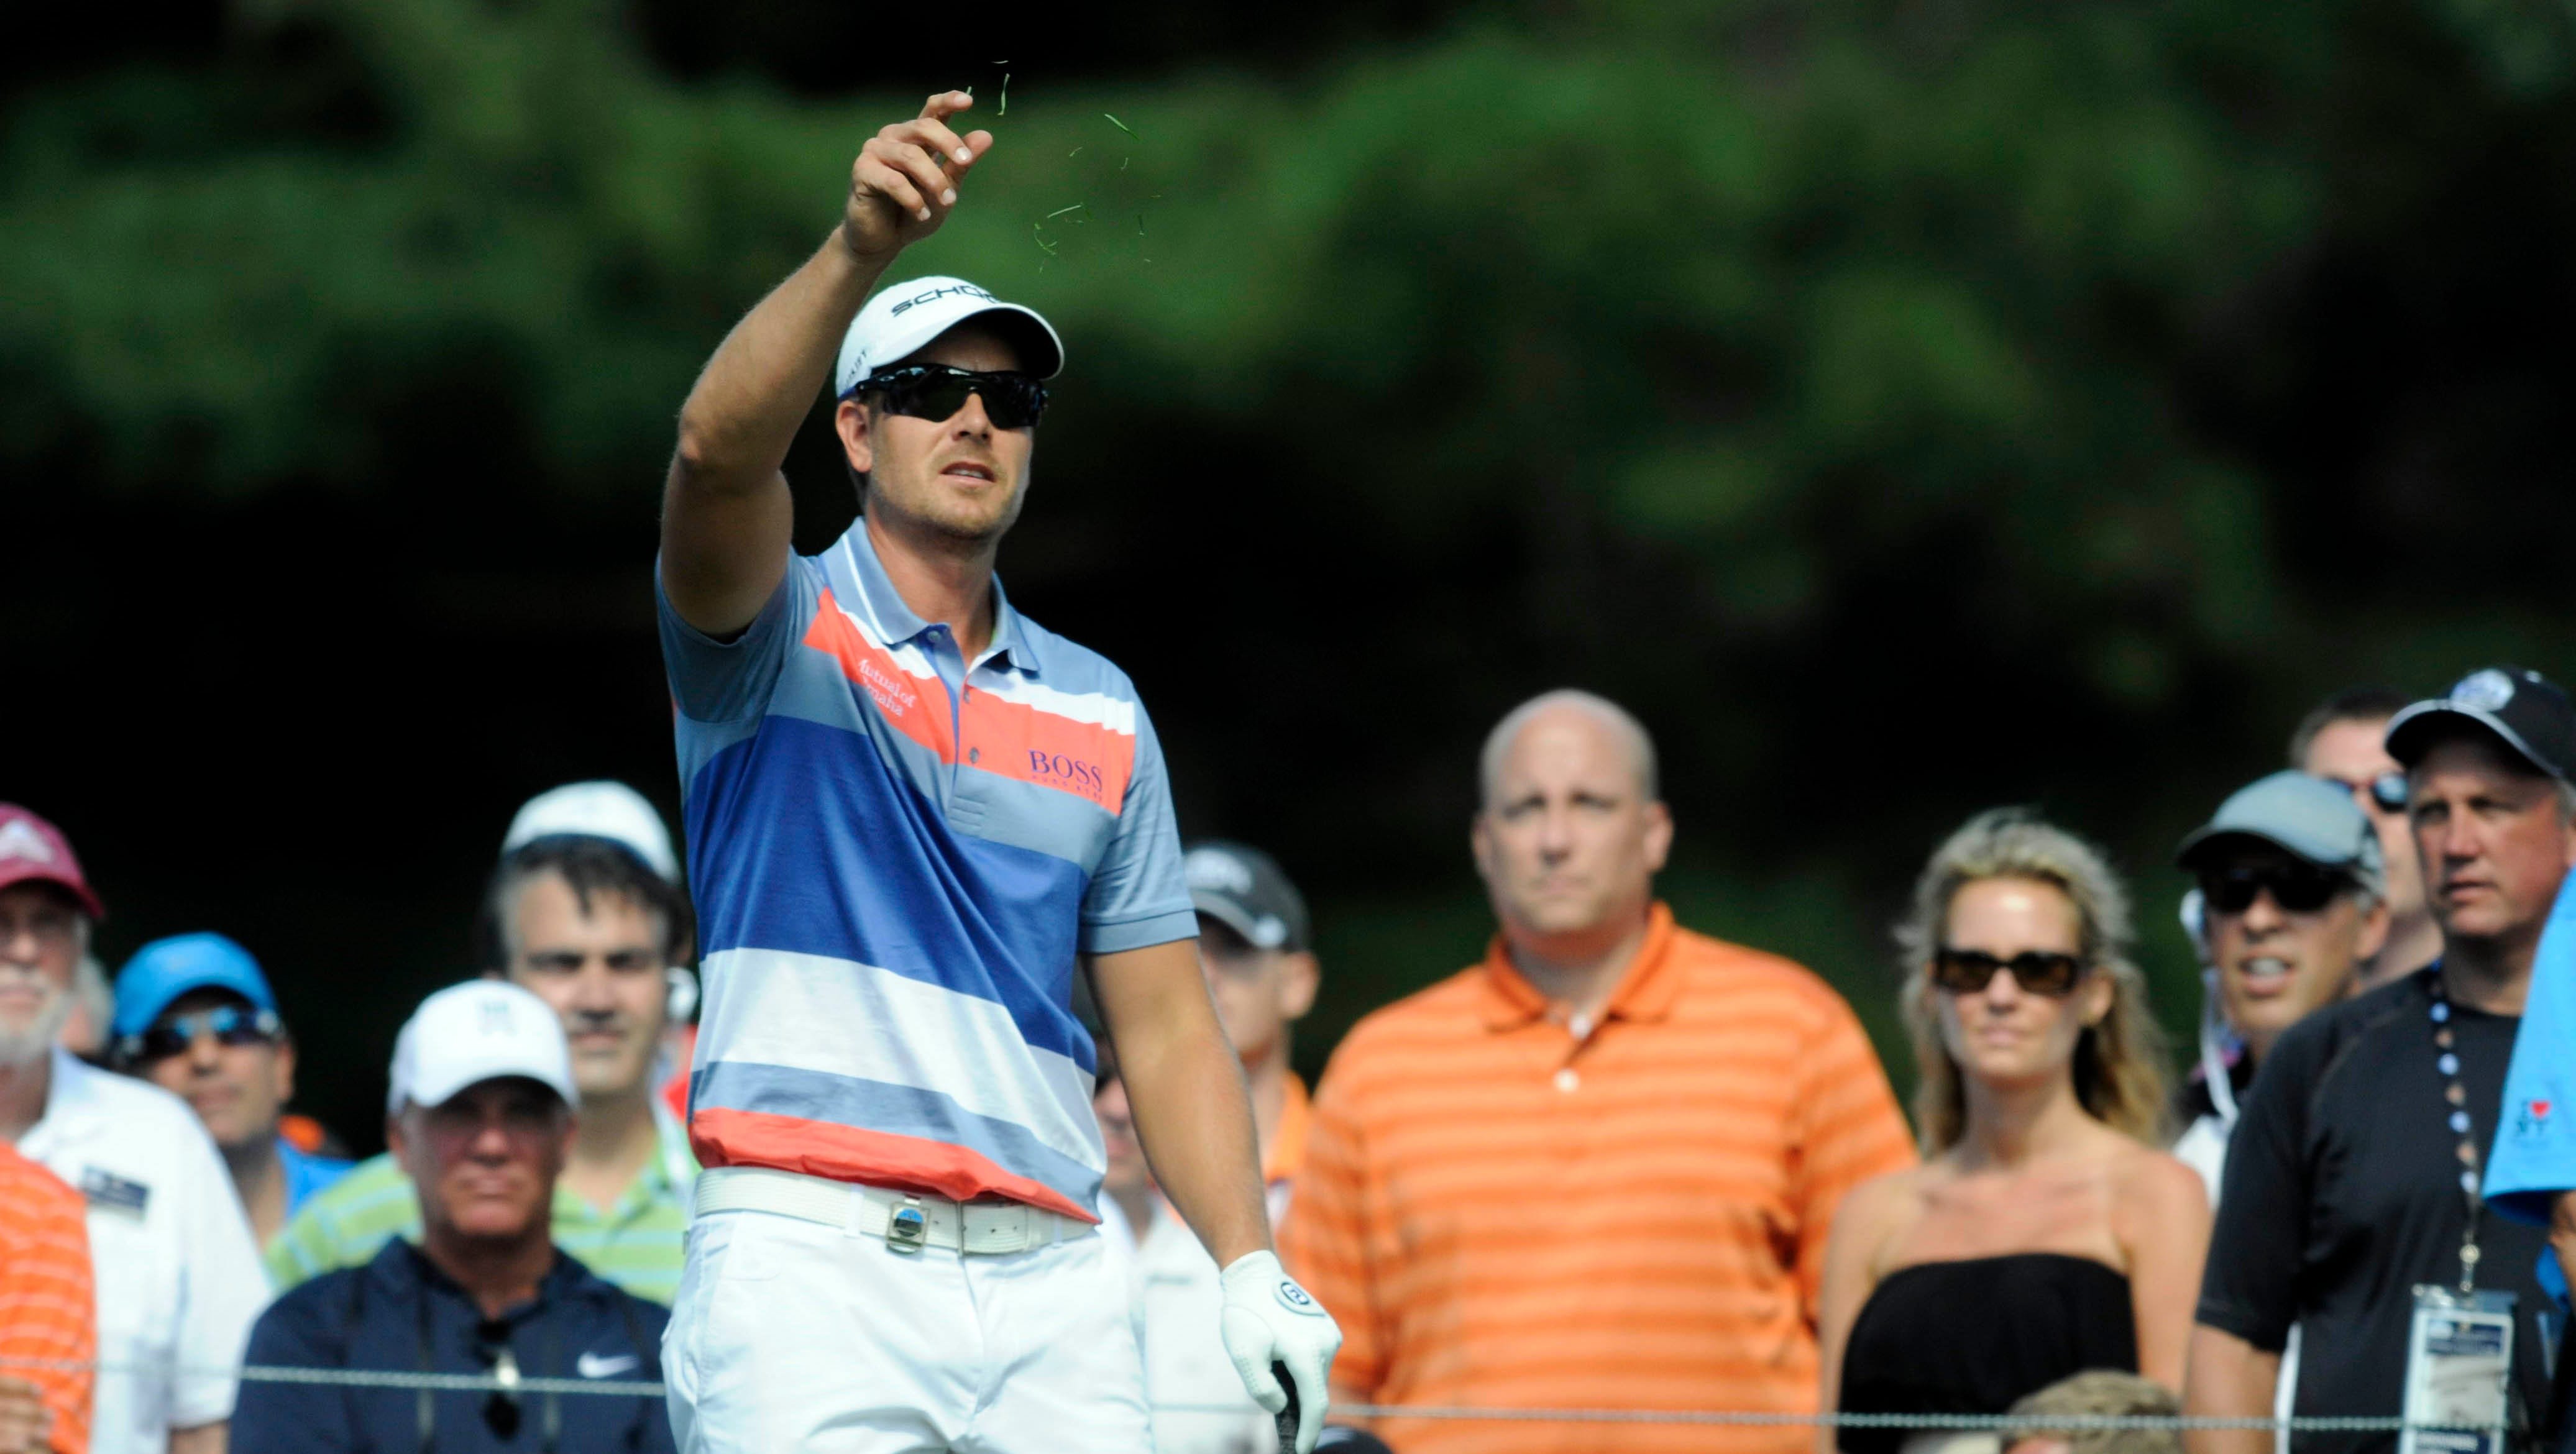 Henrik Stenson tests the wind on the sixth tee.